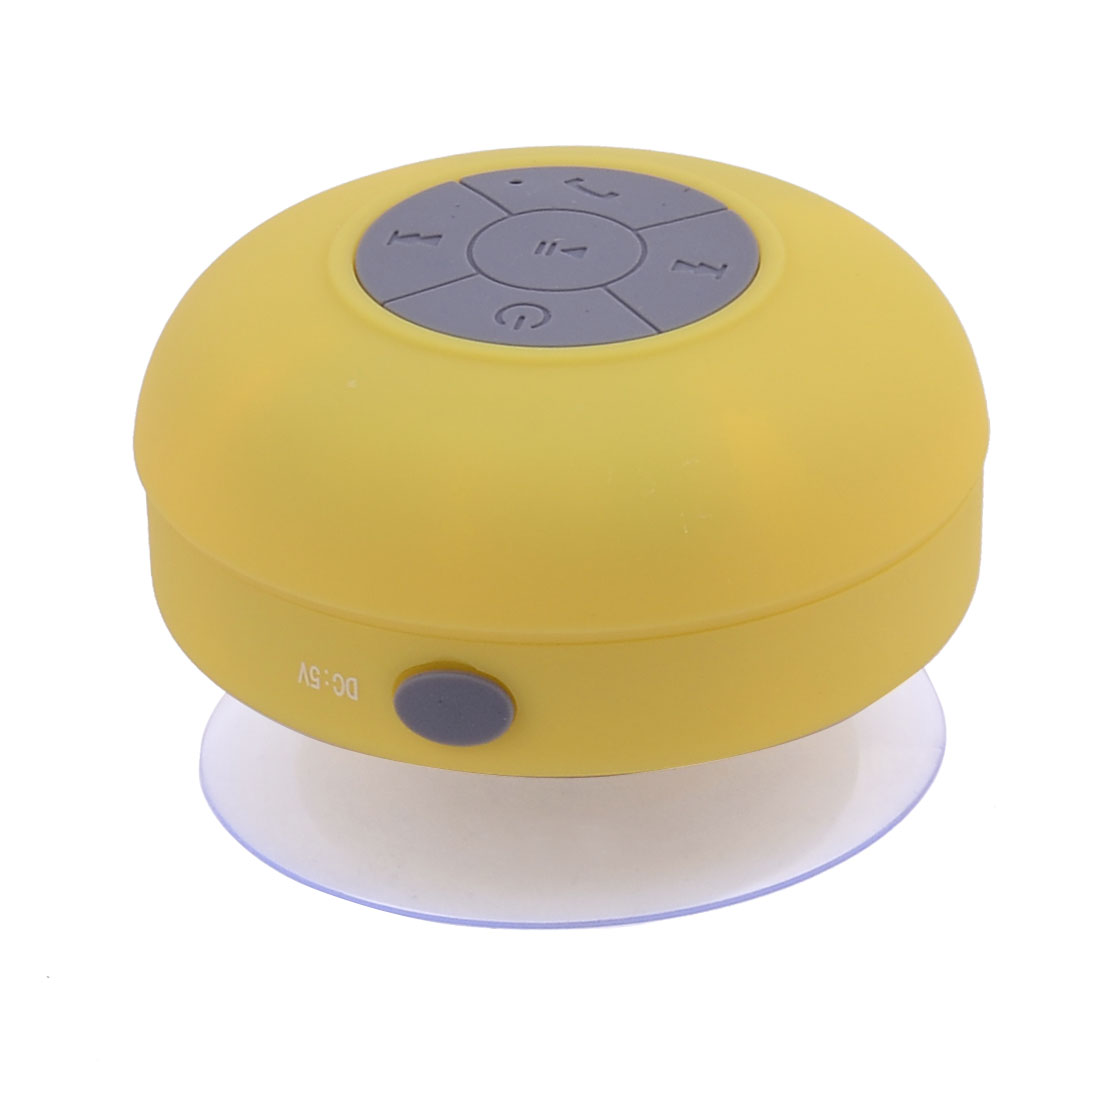 Smartphone Portable Mini Wireless bluetooth Sucker Hand-free Call Stereo Speaker Yellow